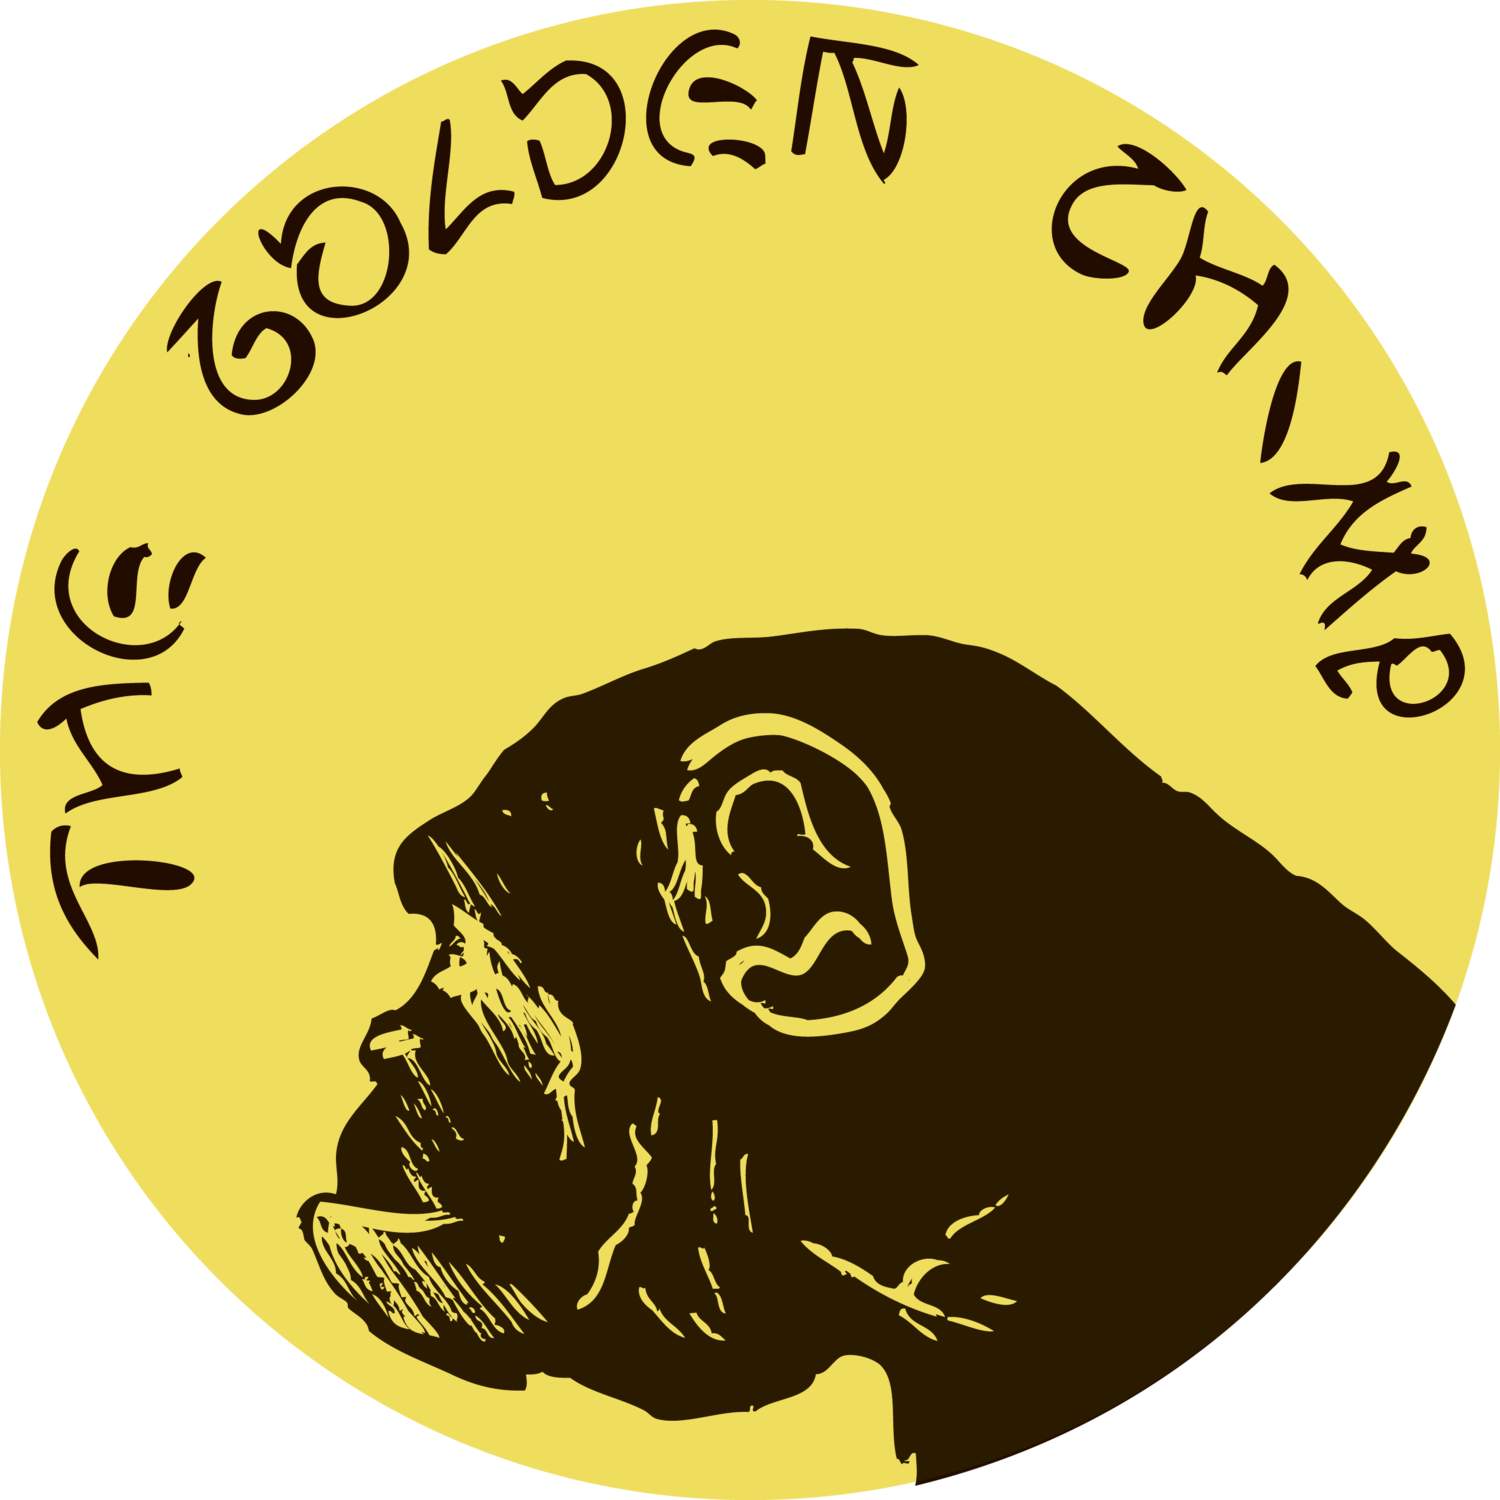 The Golden Chimp